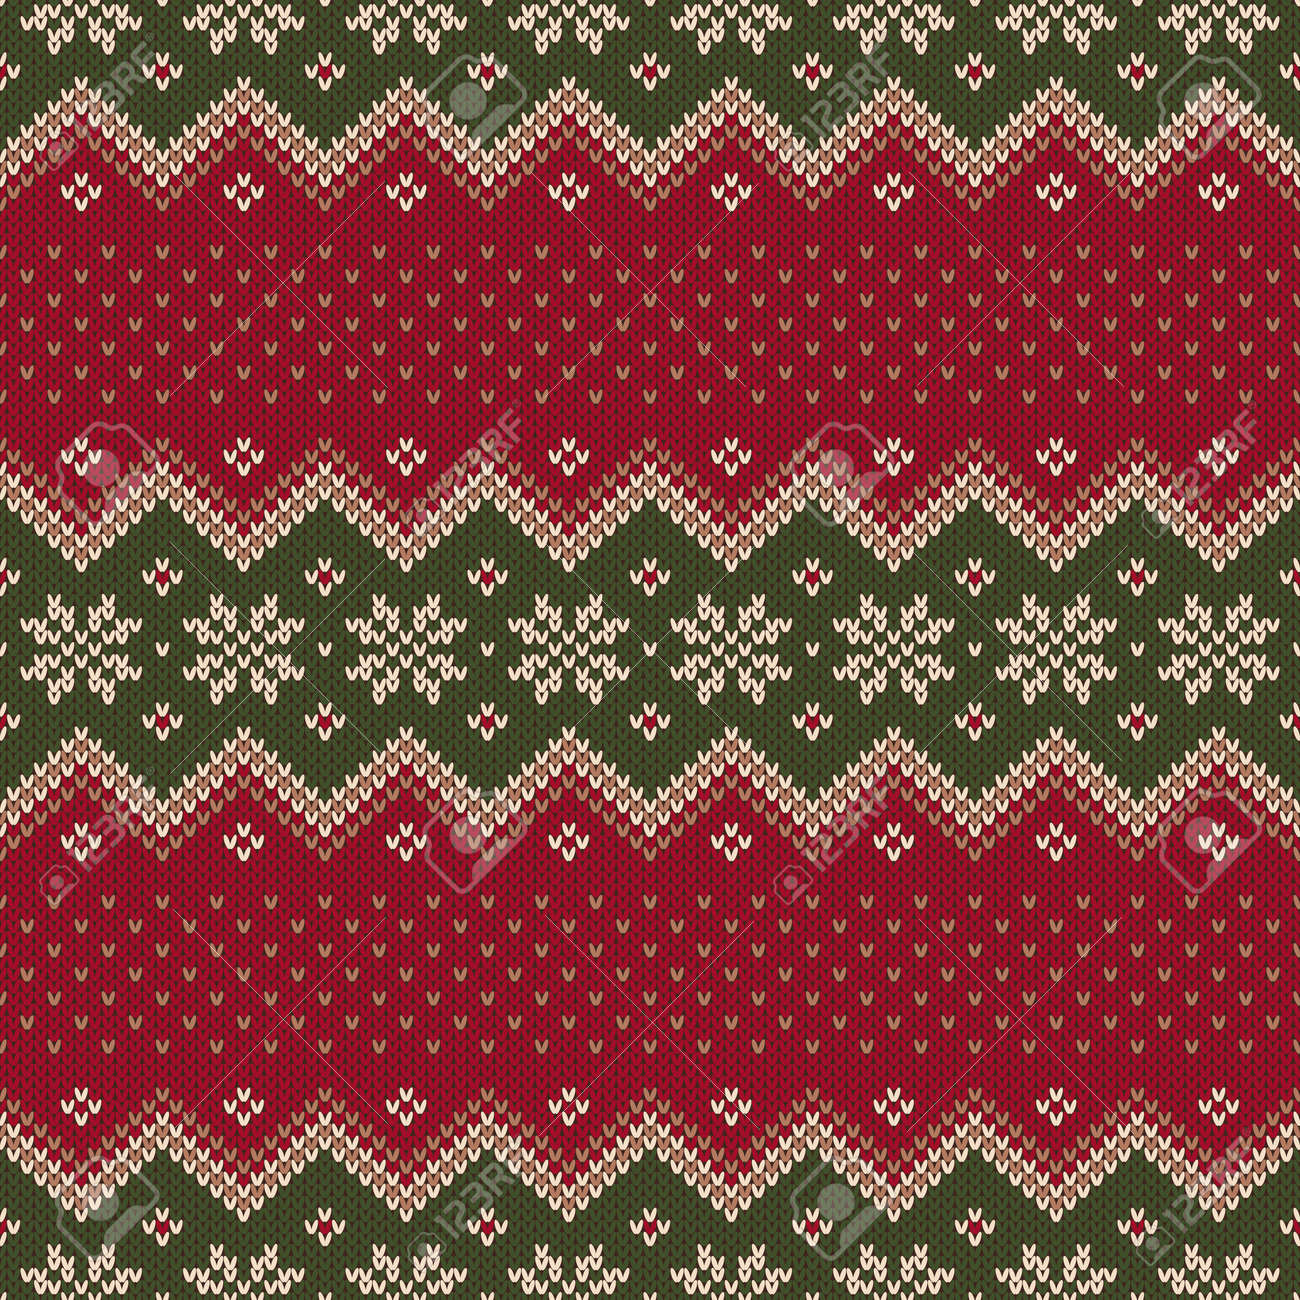 Christmas Sweater Pattern.Traditional Christmas Sweater Design Seamless Pattern